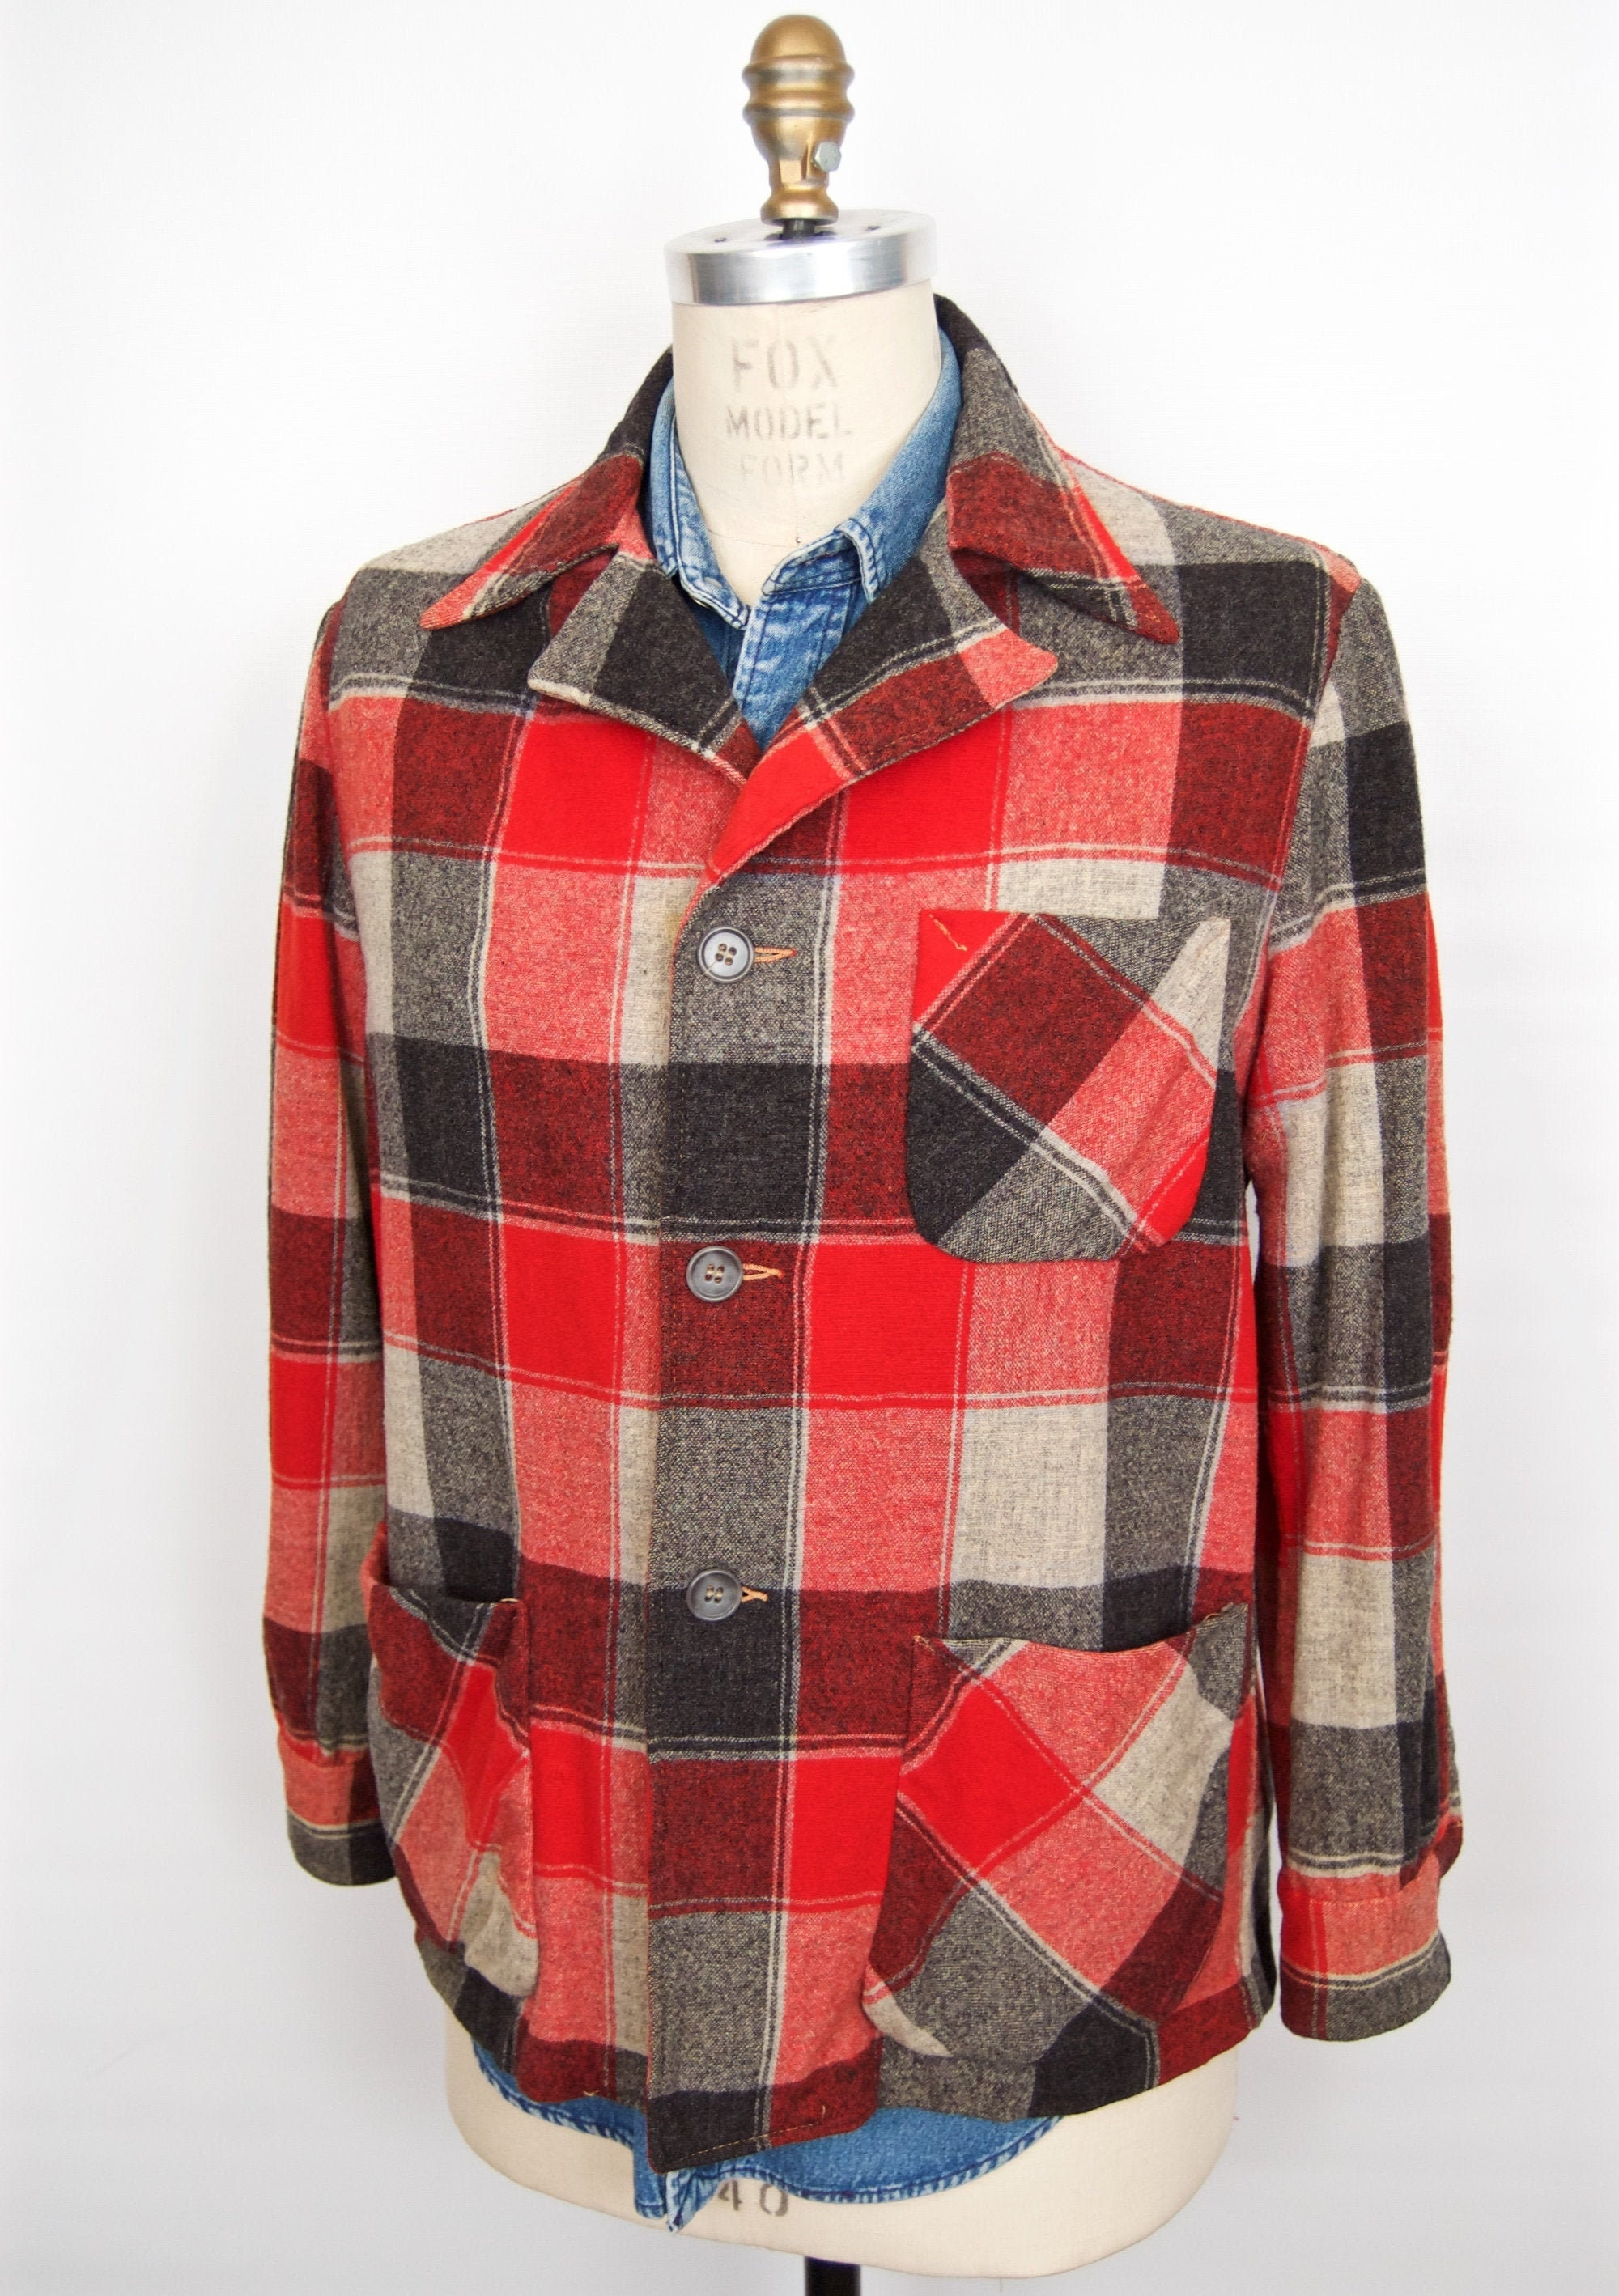 1940s Men's Shirts, Sweaters, Vests 1940S-50S Red Check Wool Sport CoatPendleton-49Ers-style Shirt Jacket Buffalo Plaid Sack Mens Medium $28.00 AT vintagedancer.com